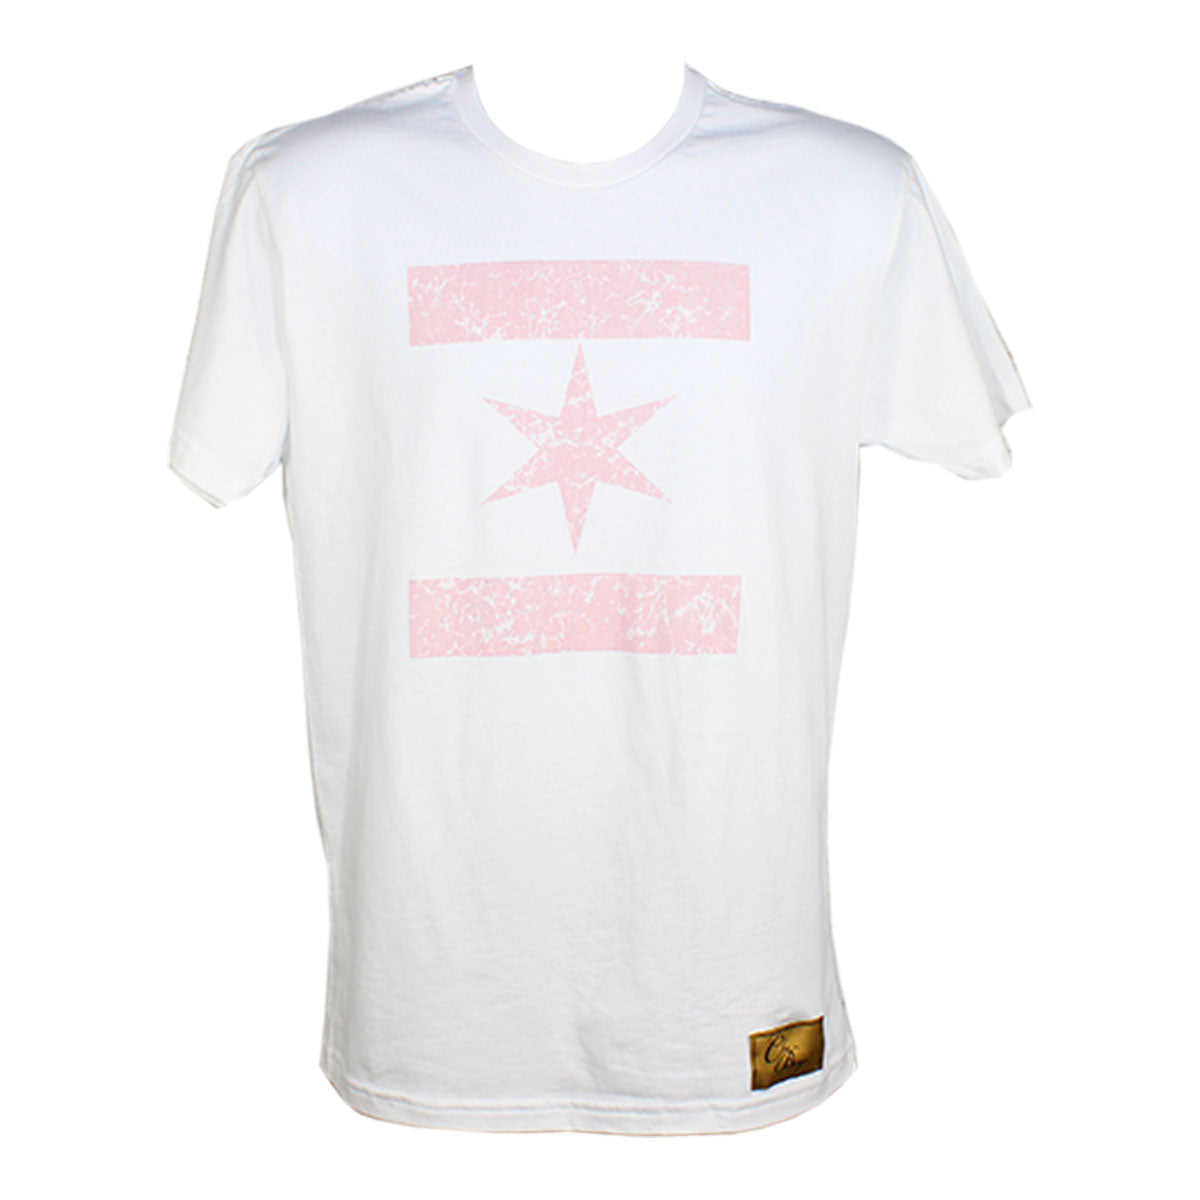 We Are One Star Tee Distressed (White/Grapefruit)